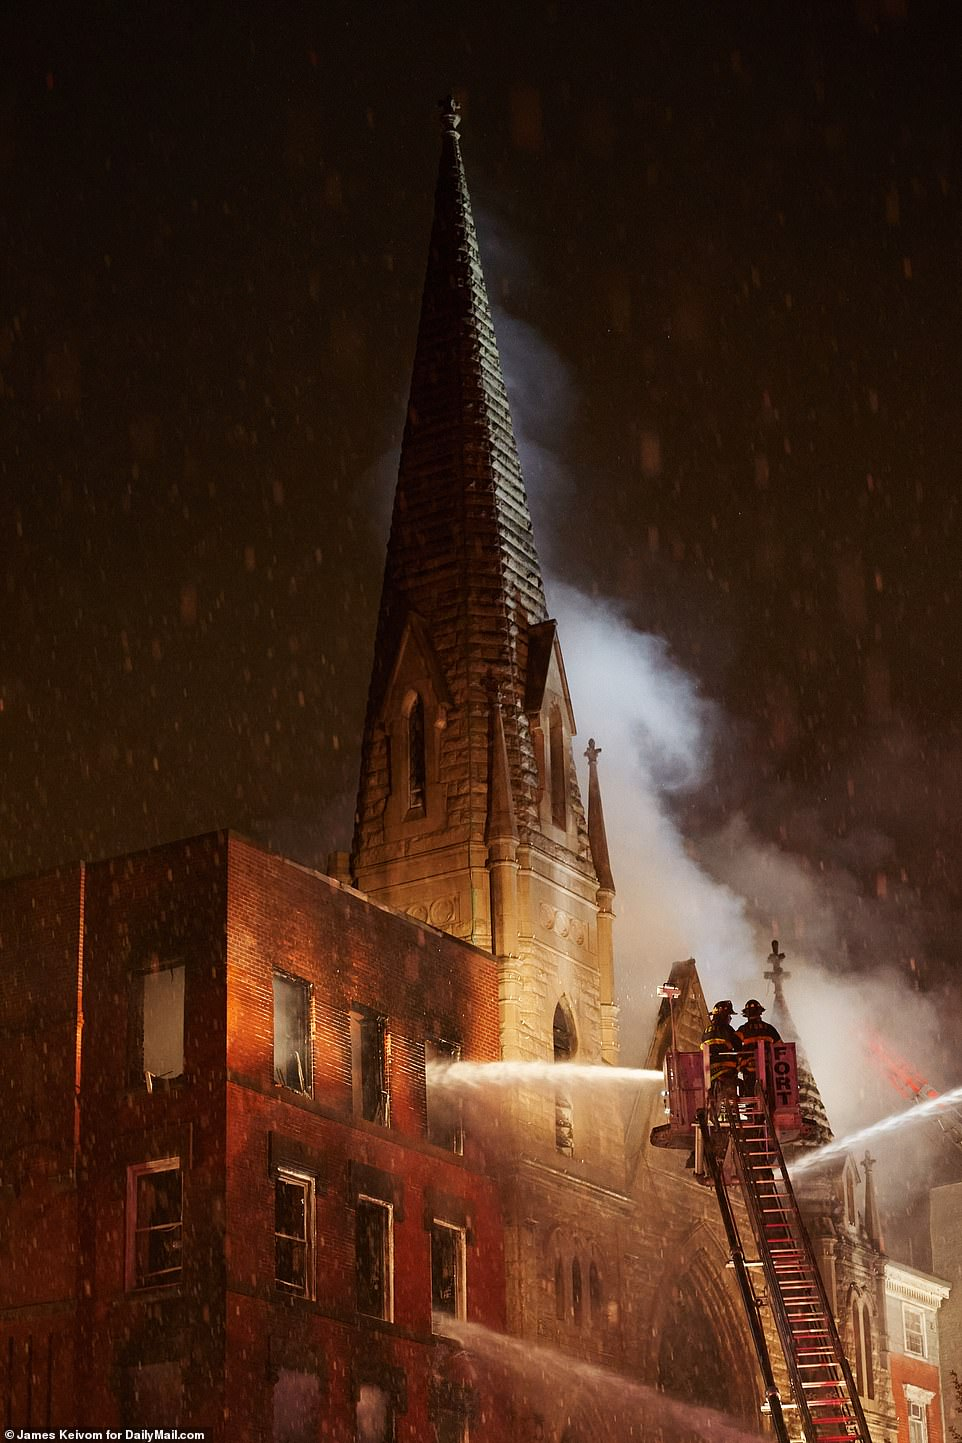 The roof of the church has been destroyed, but firefighters are trying to save its steeple